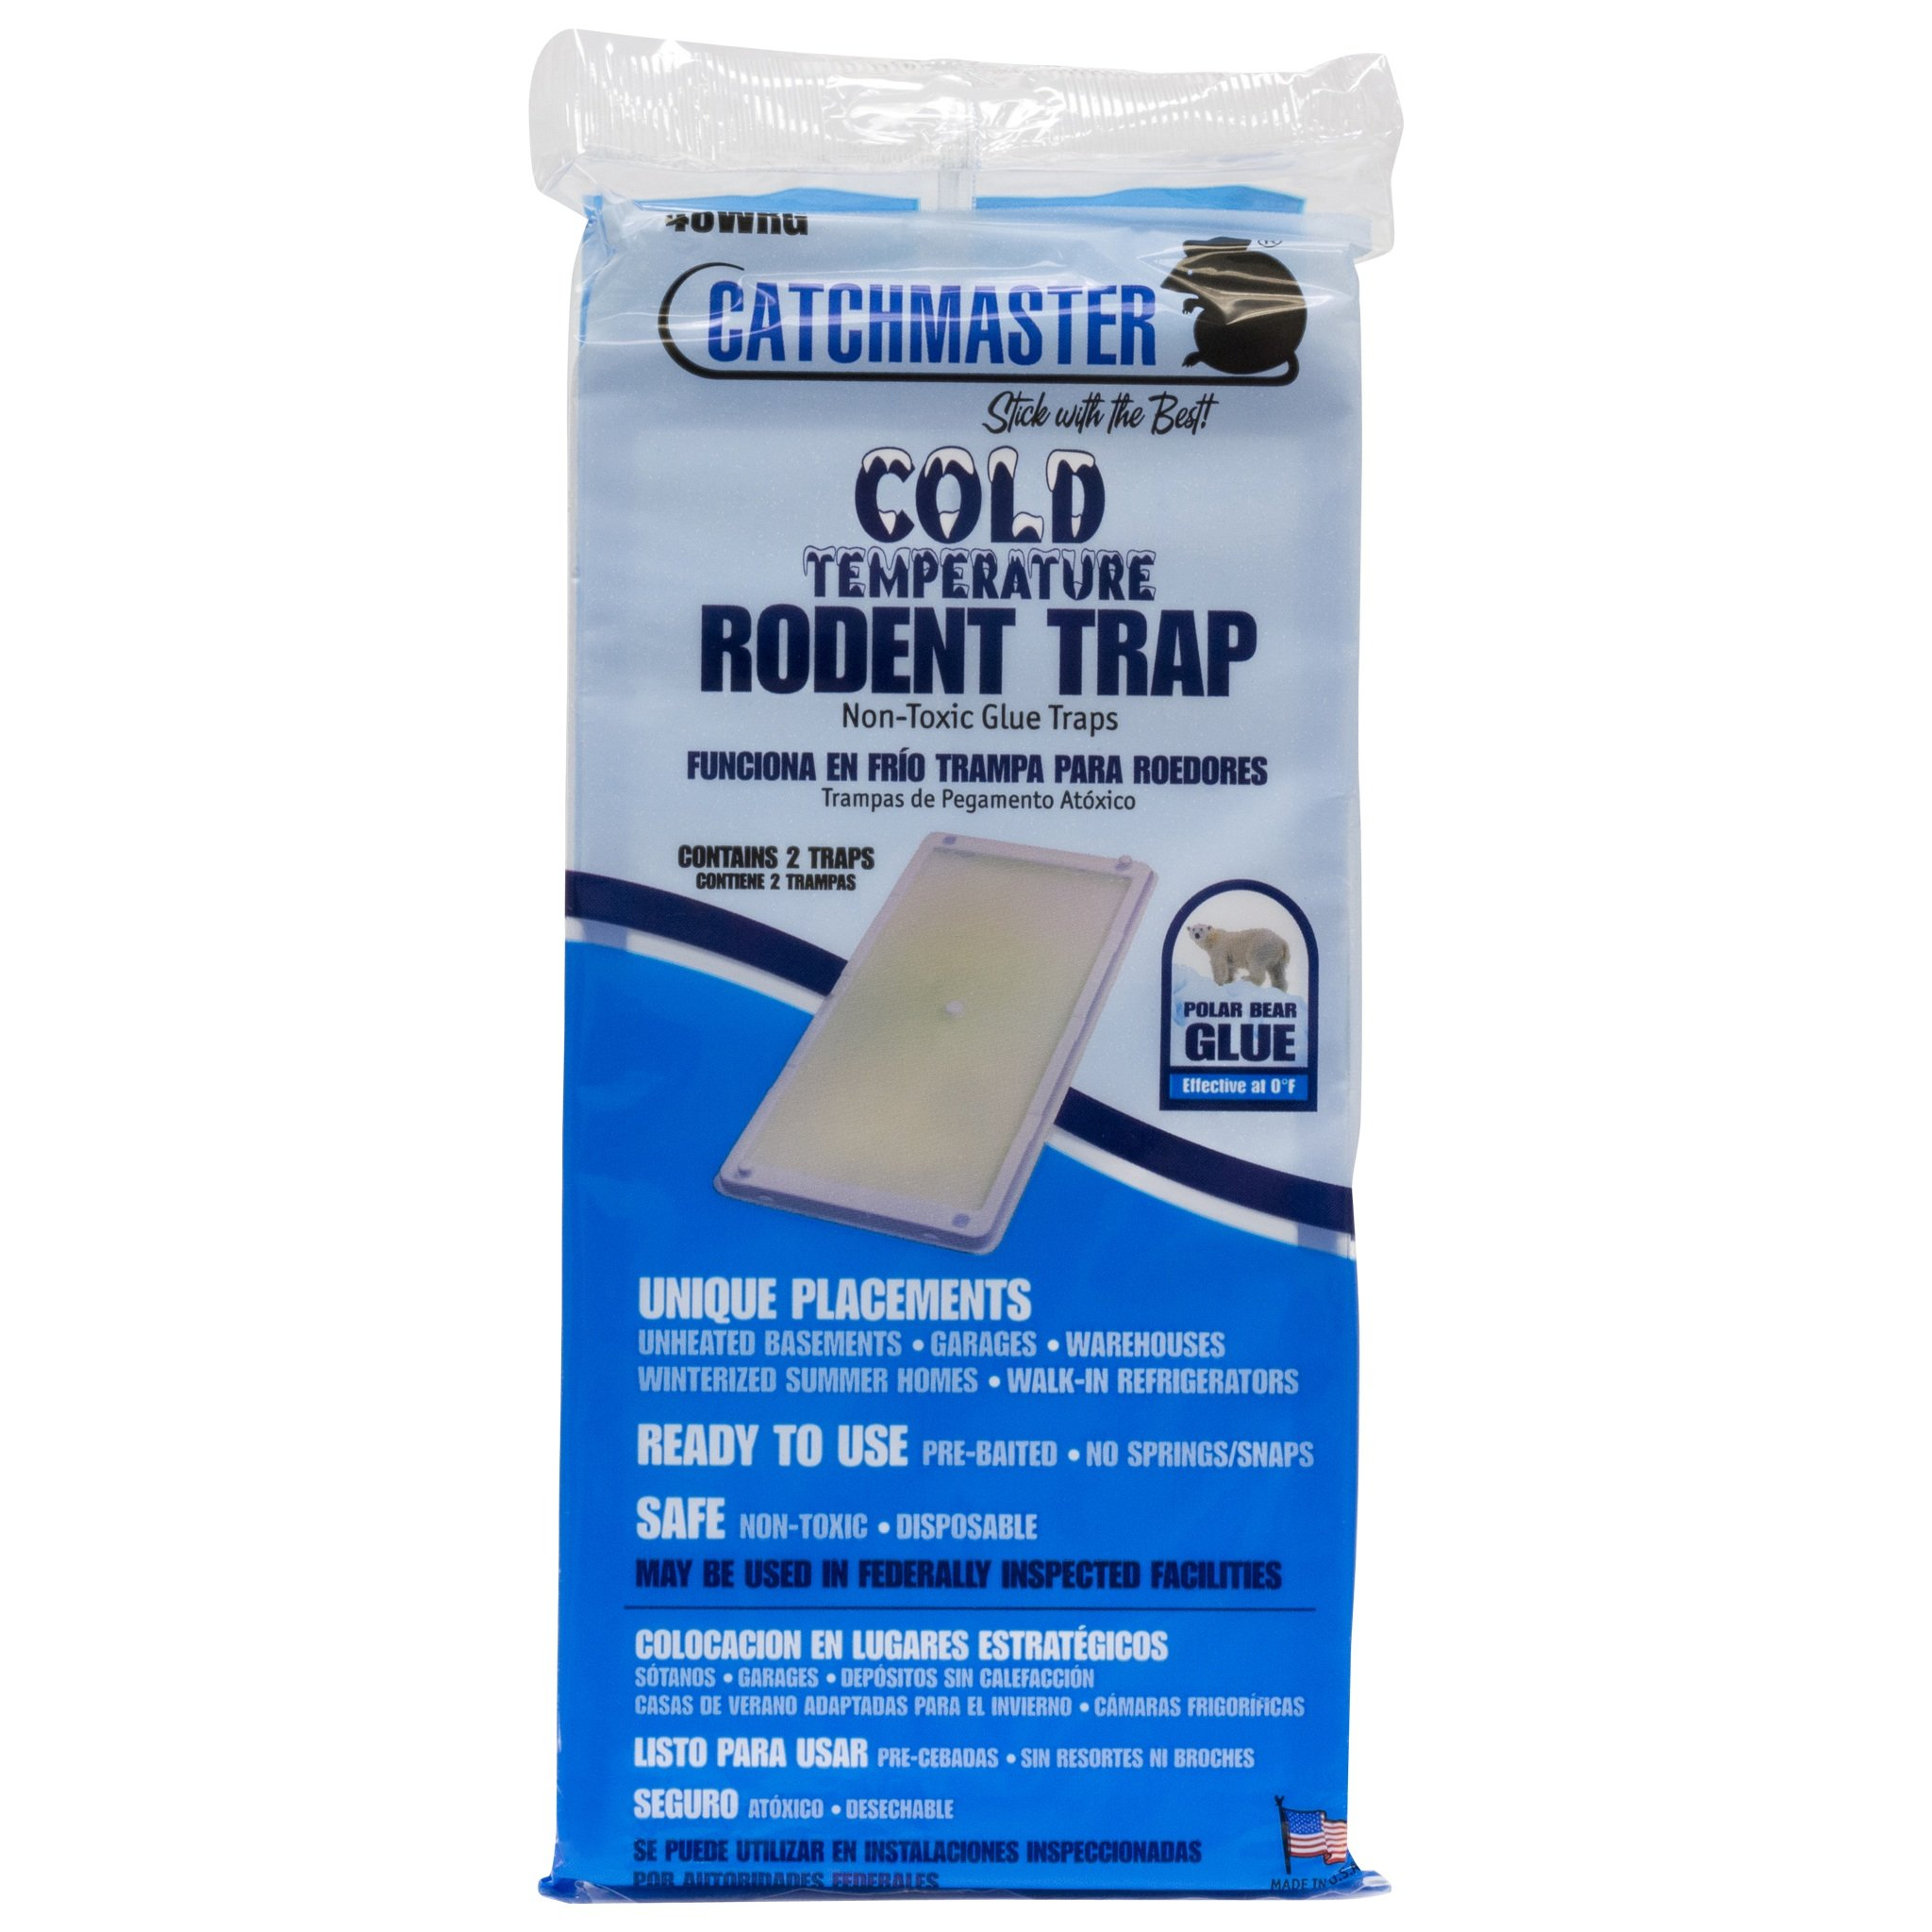 Catchmaster 48WRG Cold Temperature Glue Boards 1 Case 24 X 2 Pks. (48 Traps) by Catchmaster